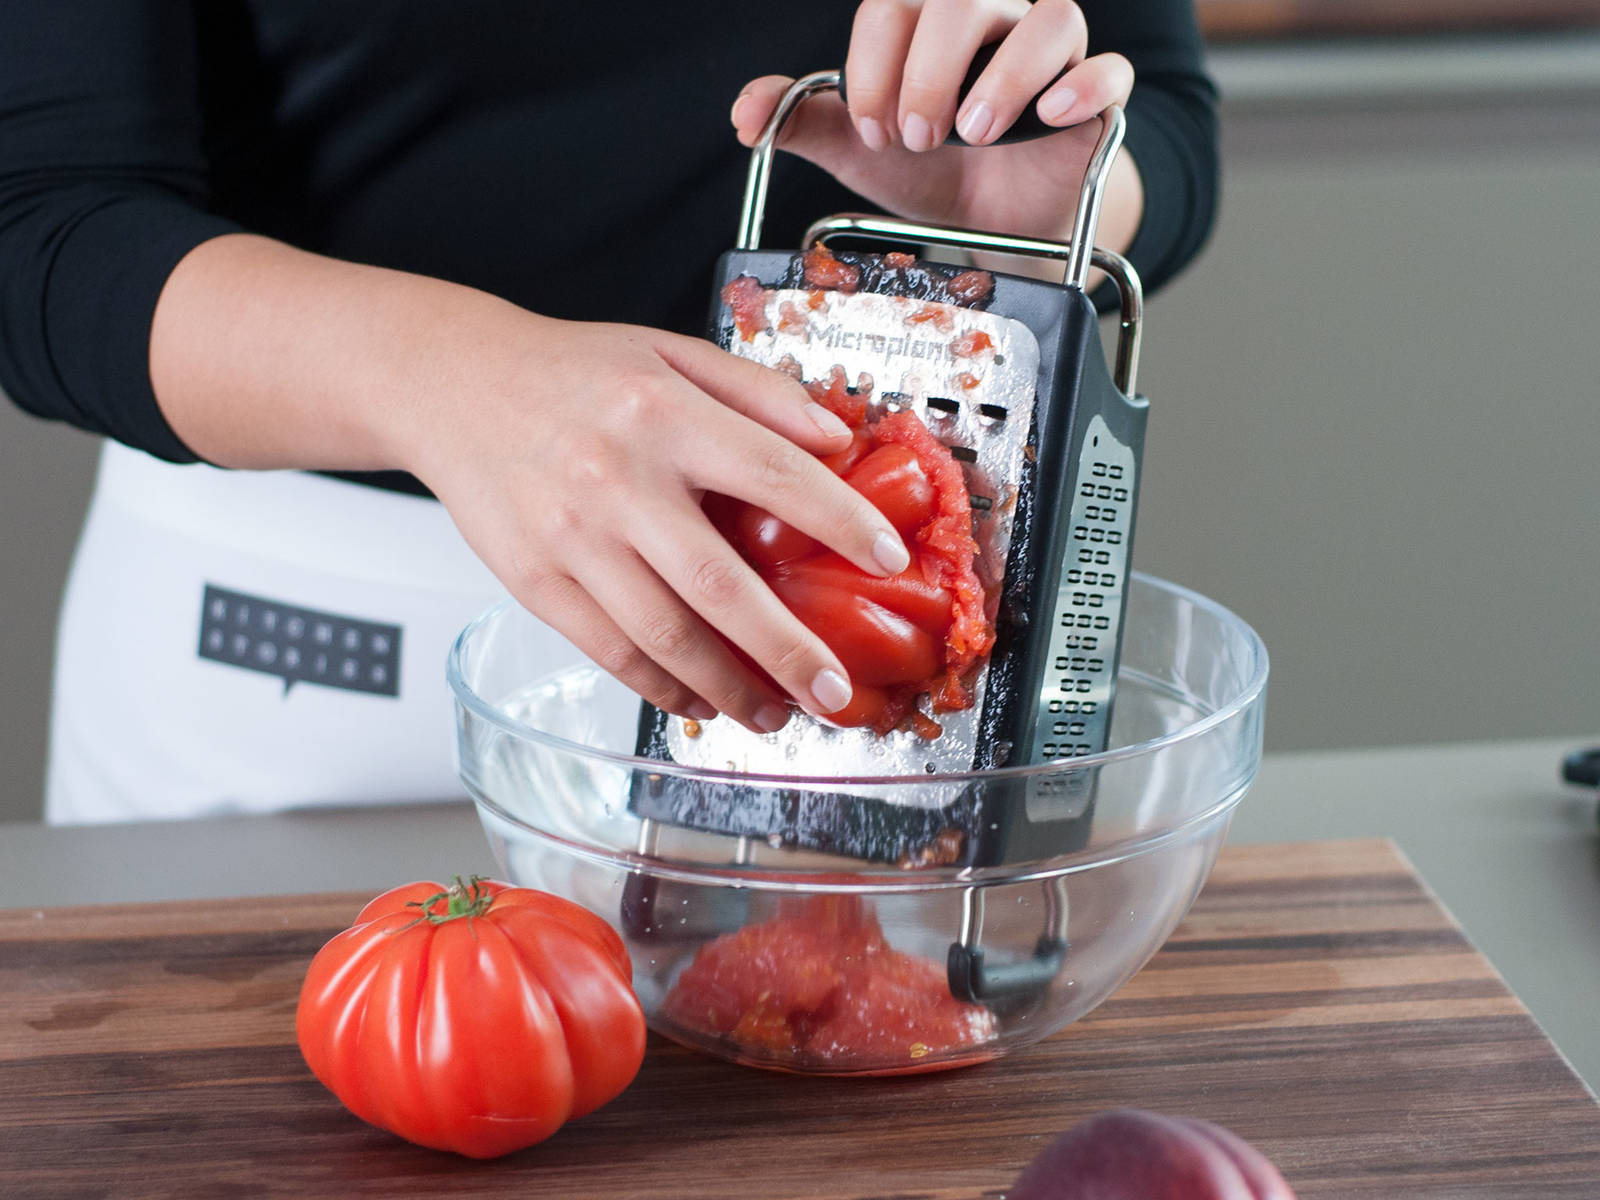 Meanwhile, grate tomatoes on box grater, using the side with the large holes. Discard skins and stems.